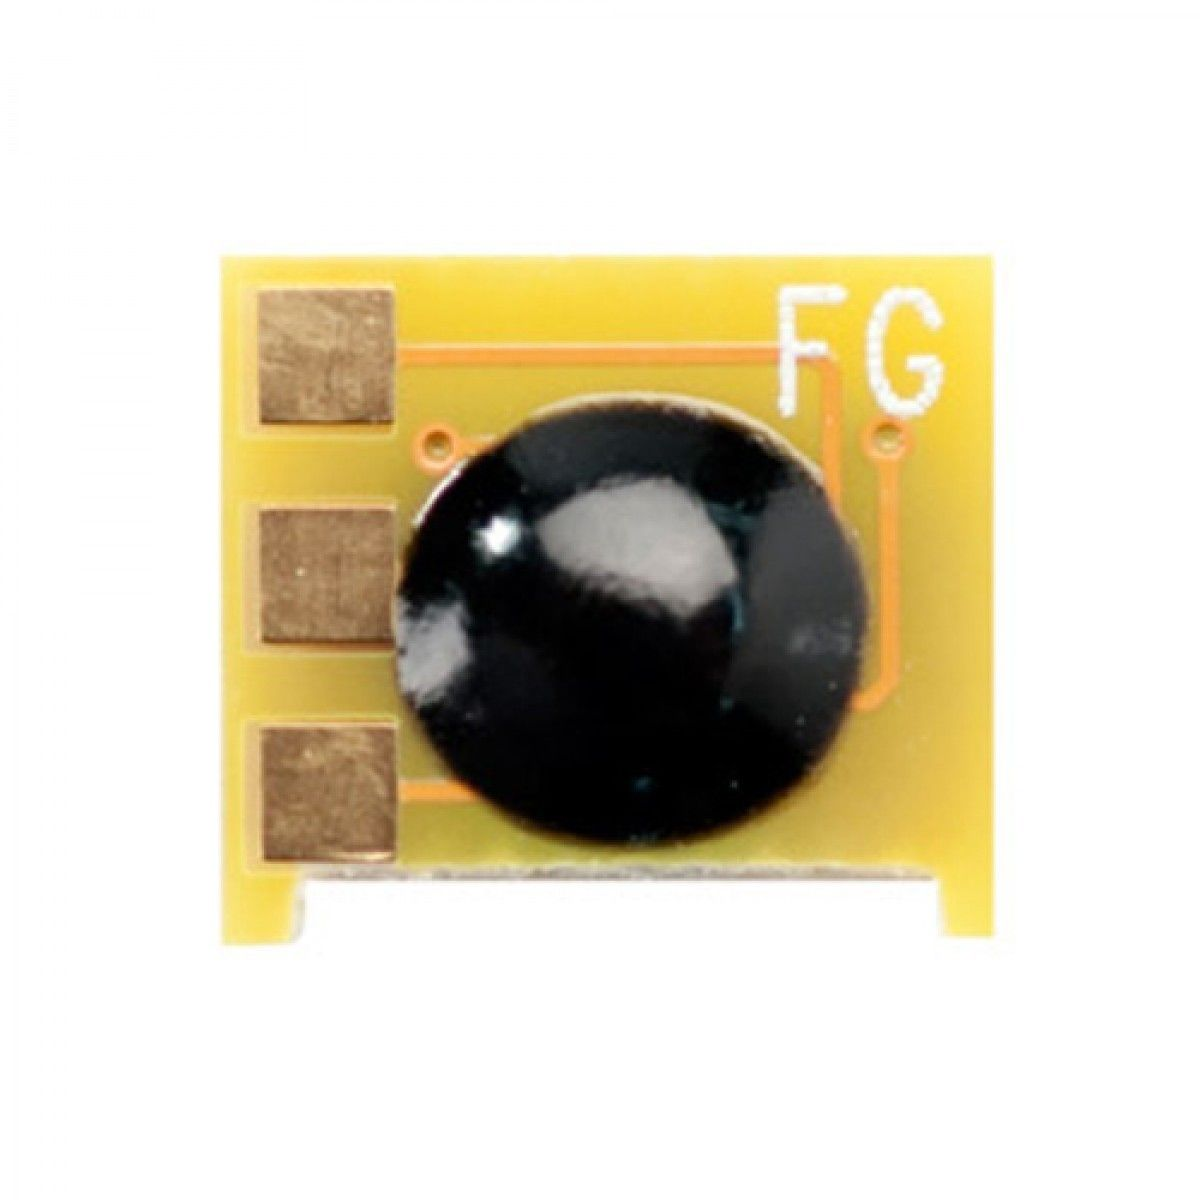 CHIP HP CF 352A  - YELLOW